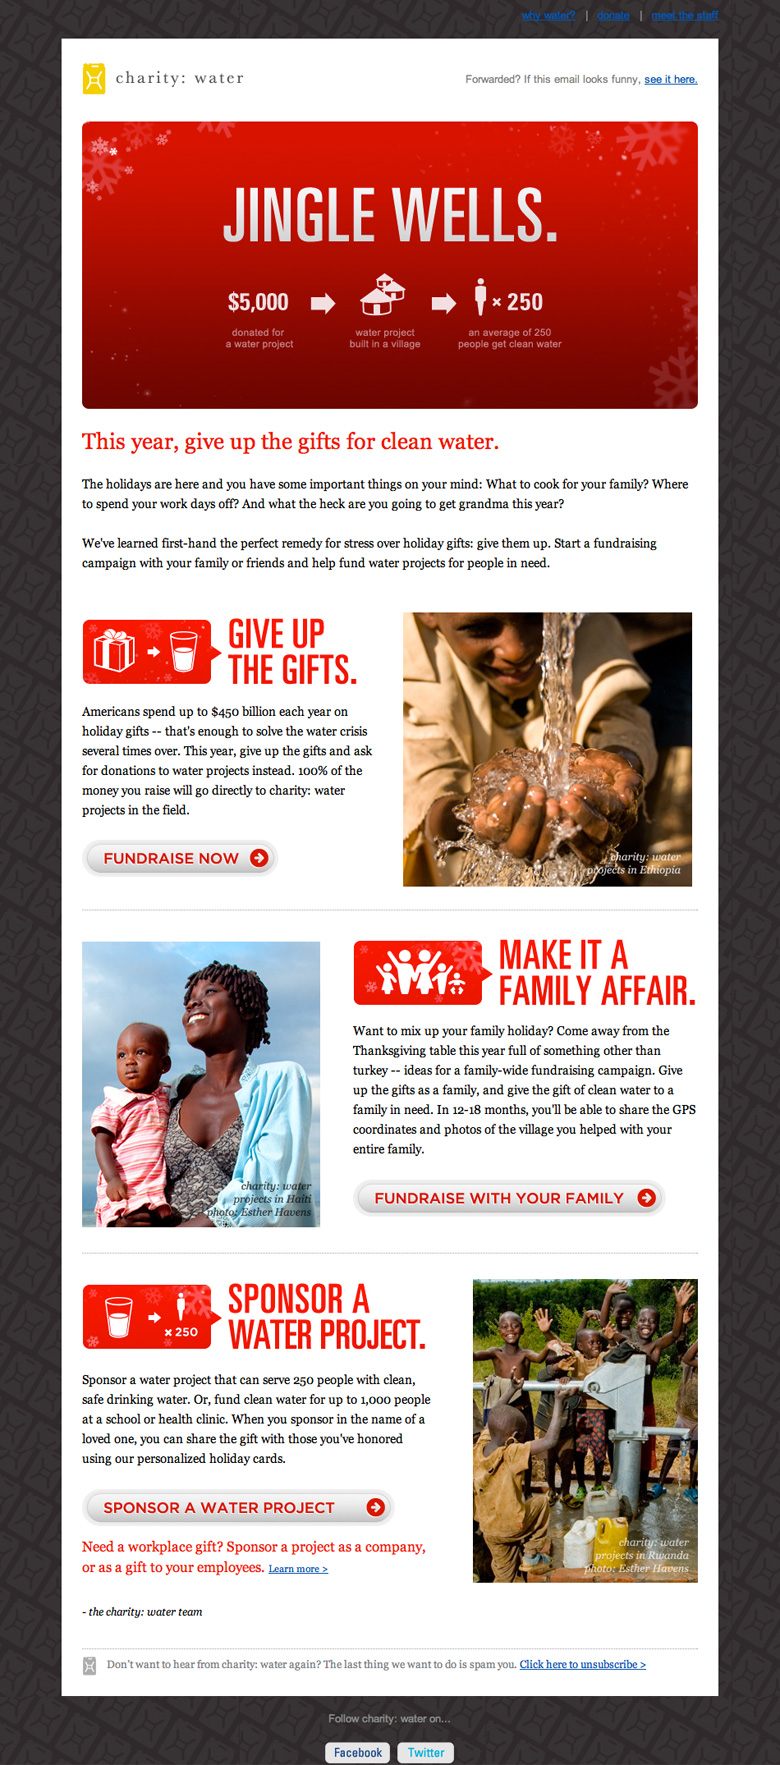 Charity Water Jingle Wells email